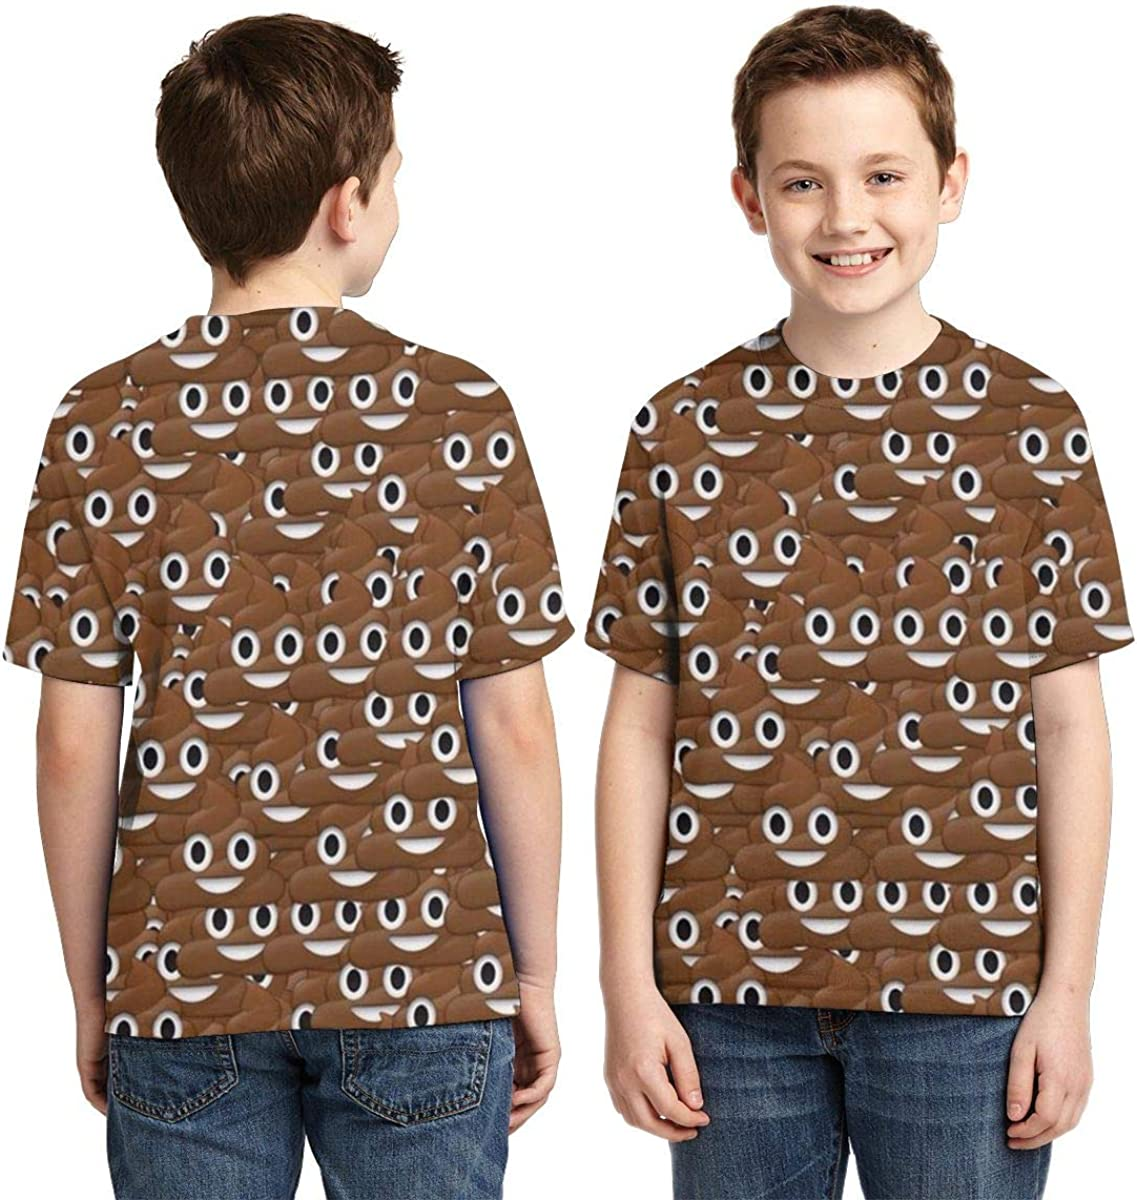 Poop Emoji Youth Fashion Tops Casual Short Sleeve Print T-Shirts for Boys and Girls